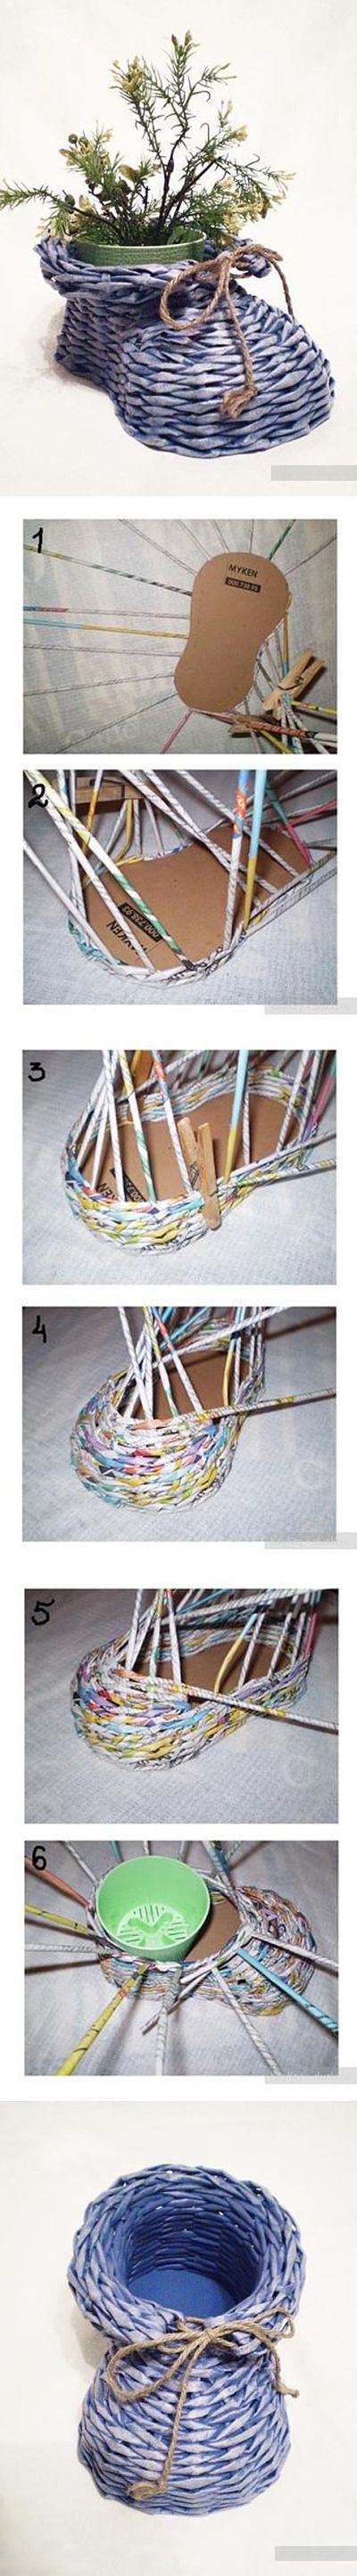 Paper roll woven shoe vase tutorial